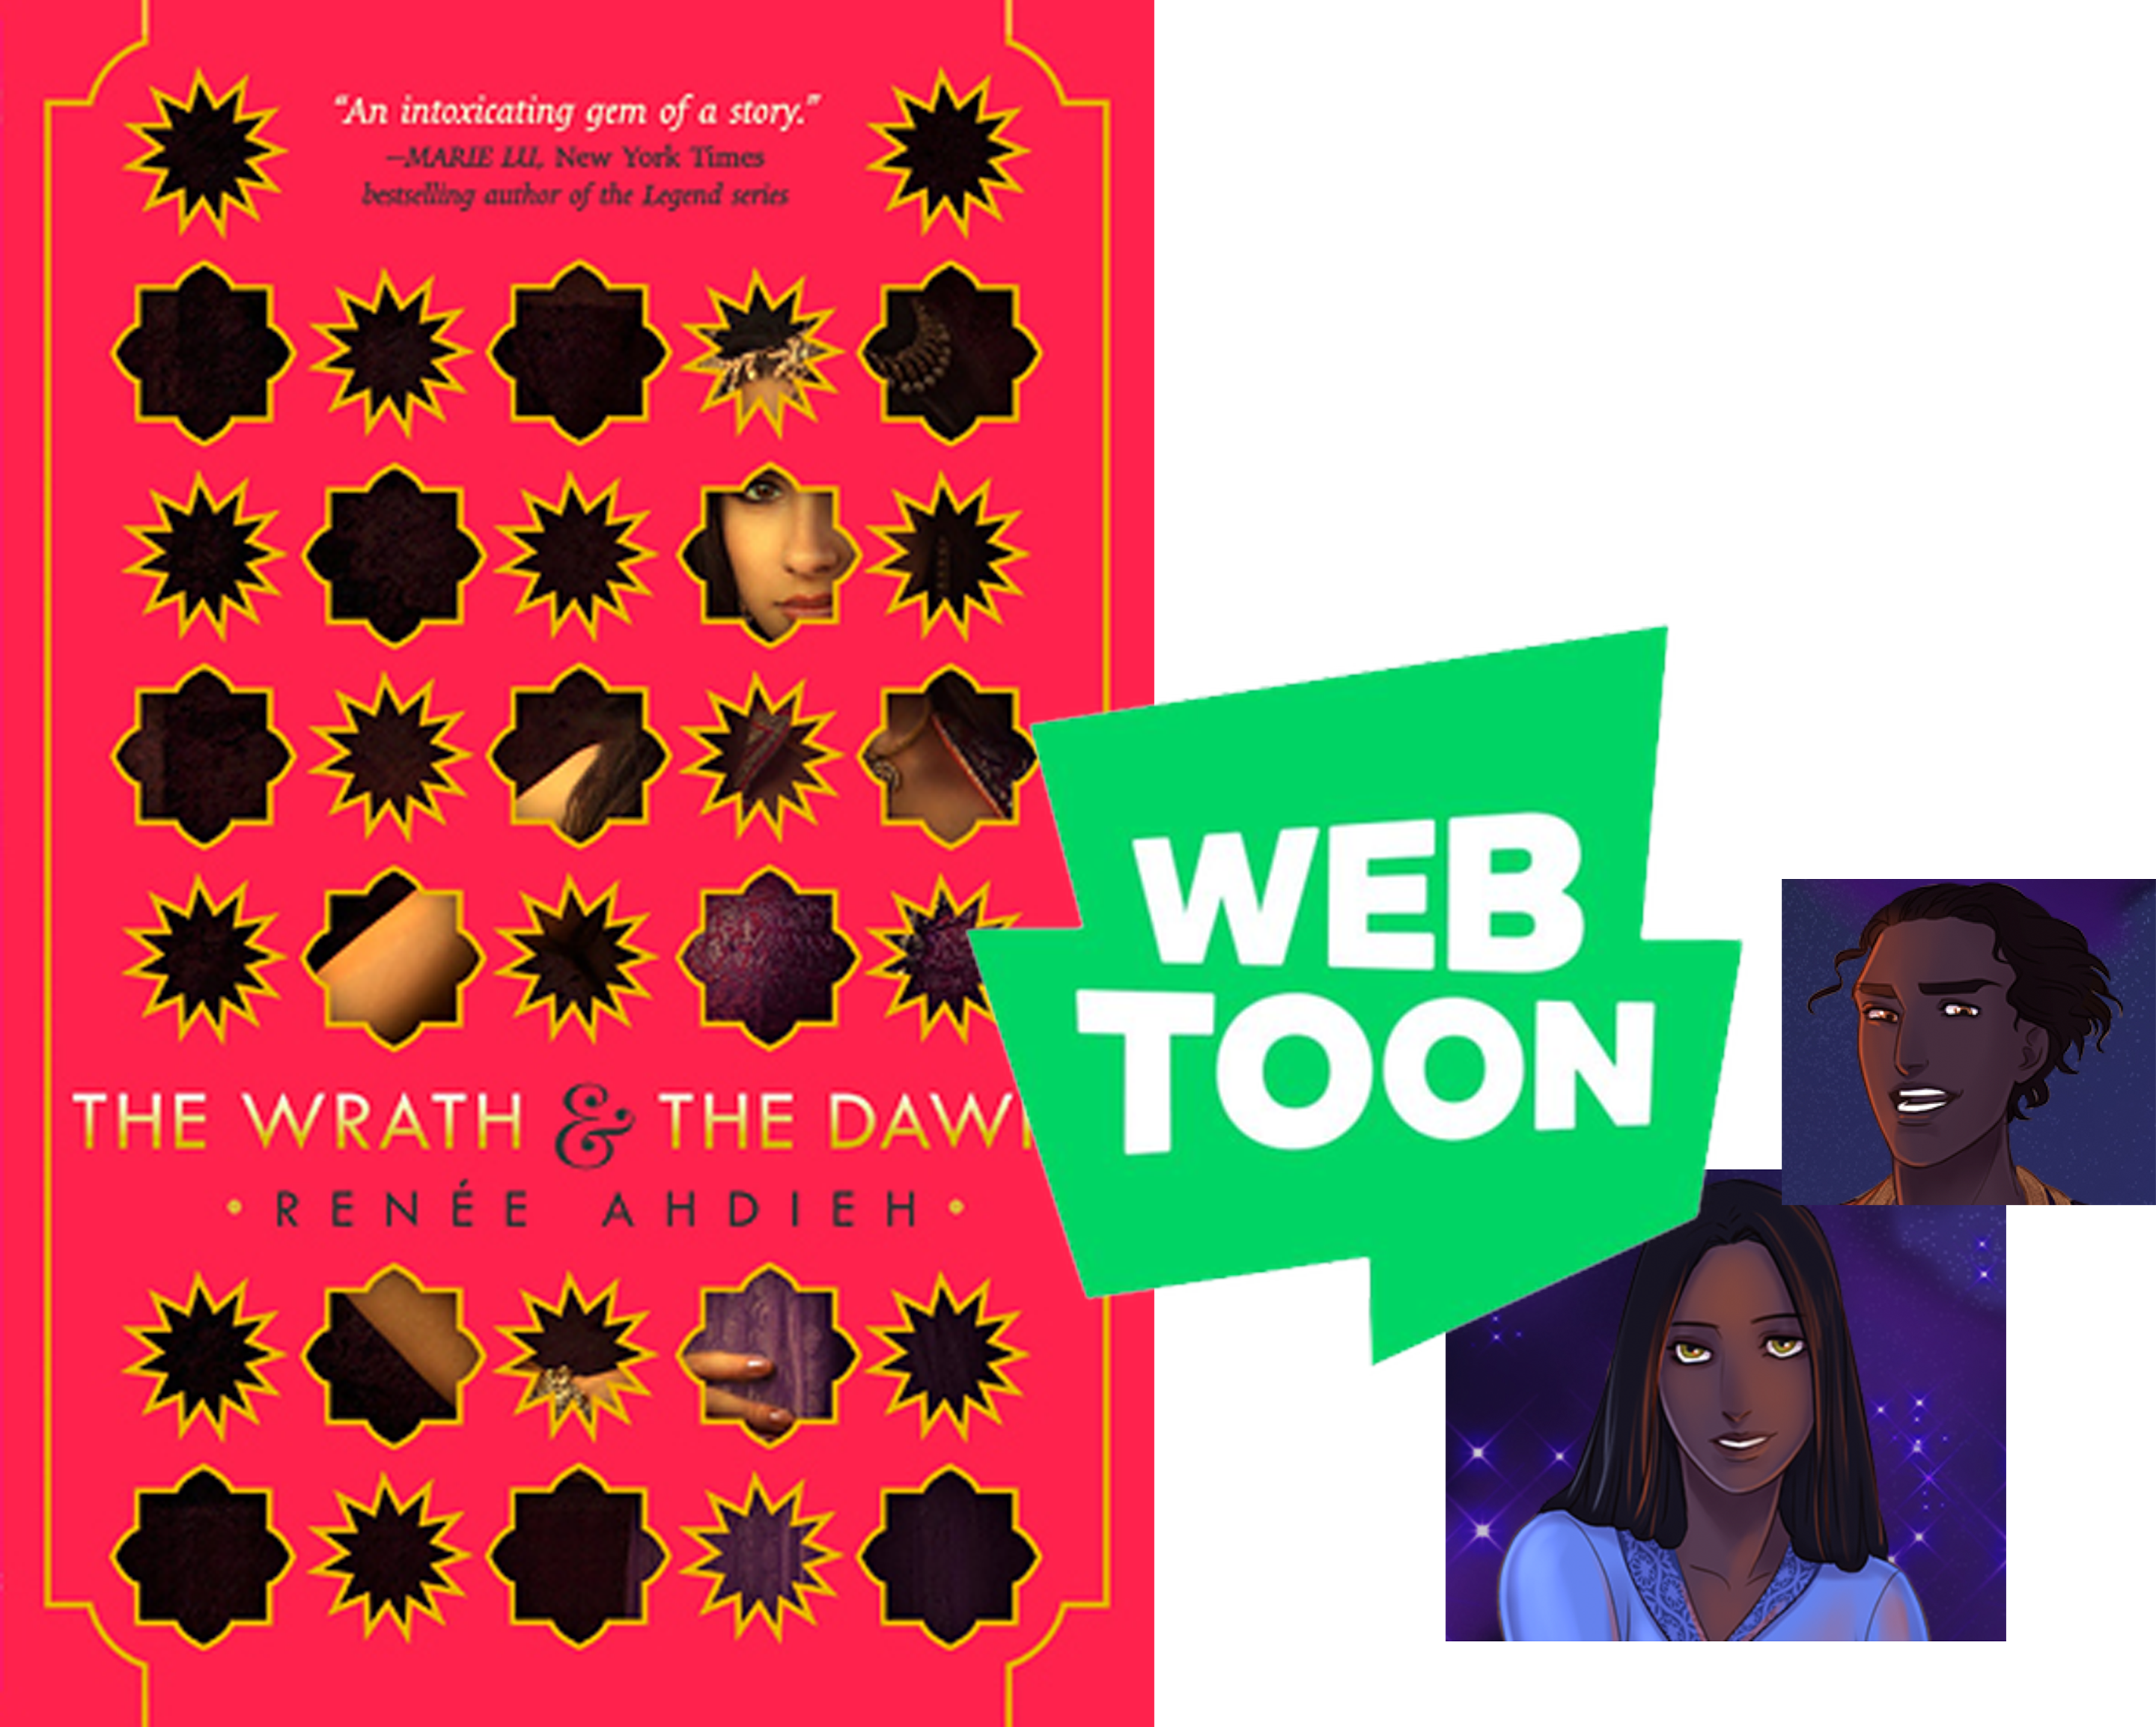 The Wrath and the Dawn Renée Ahdieh on Webtoons